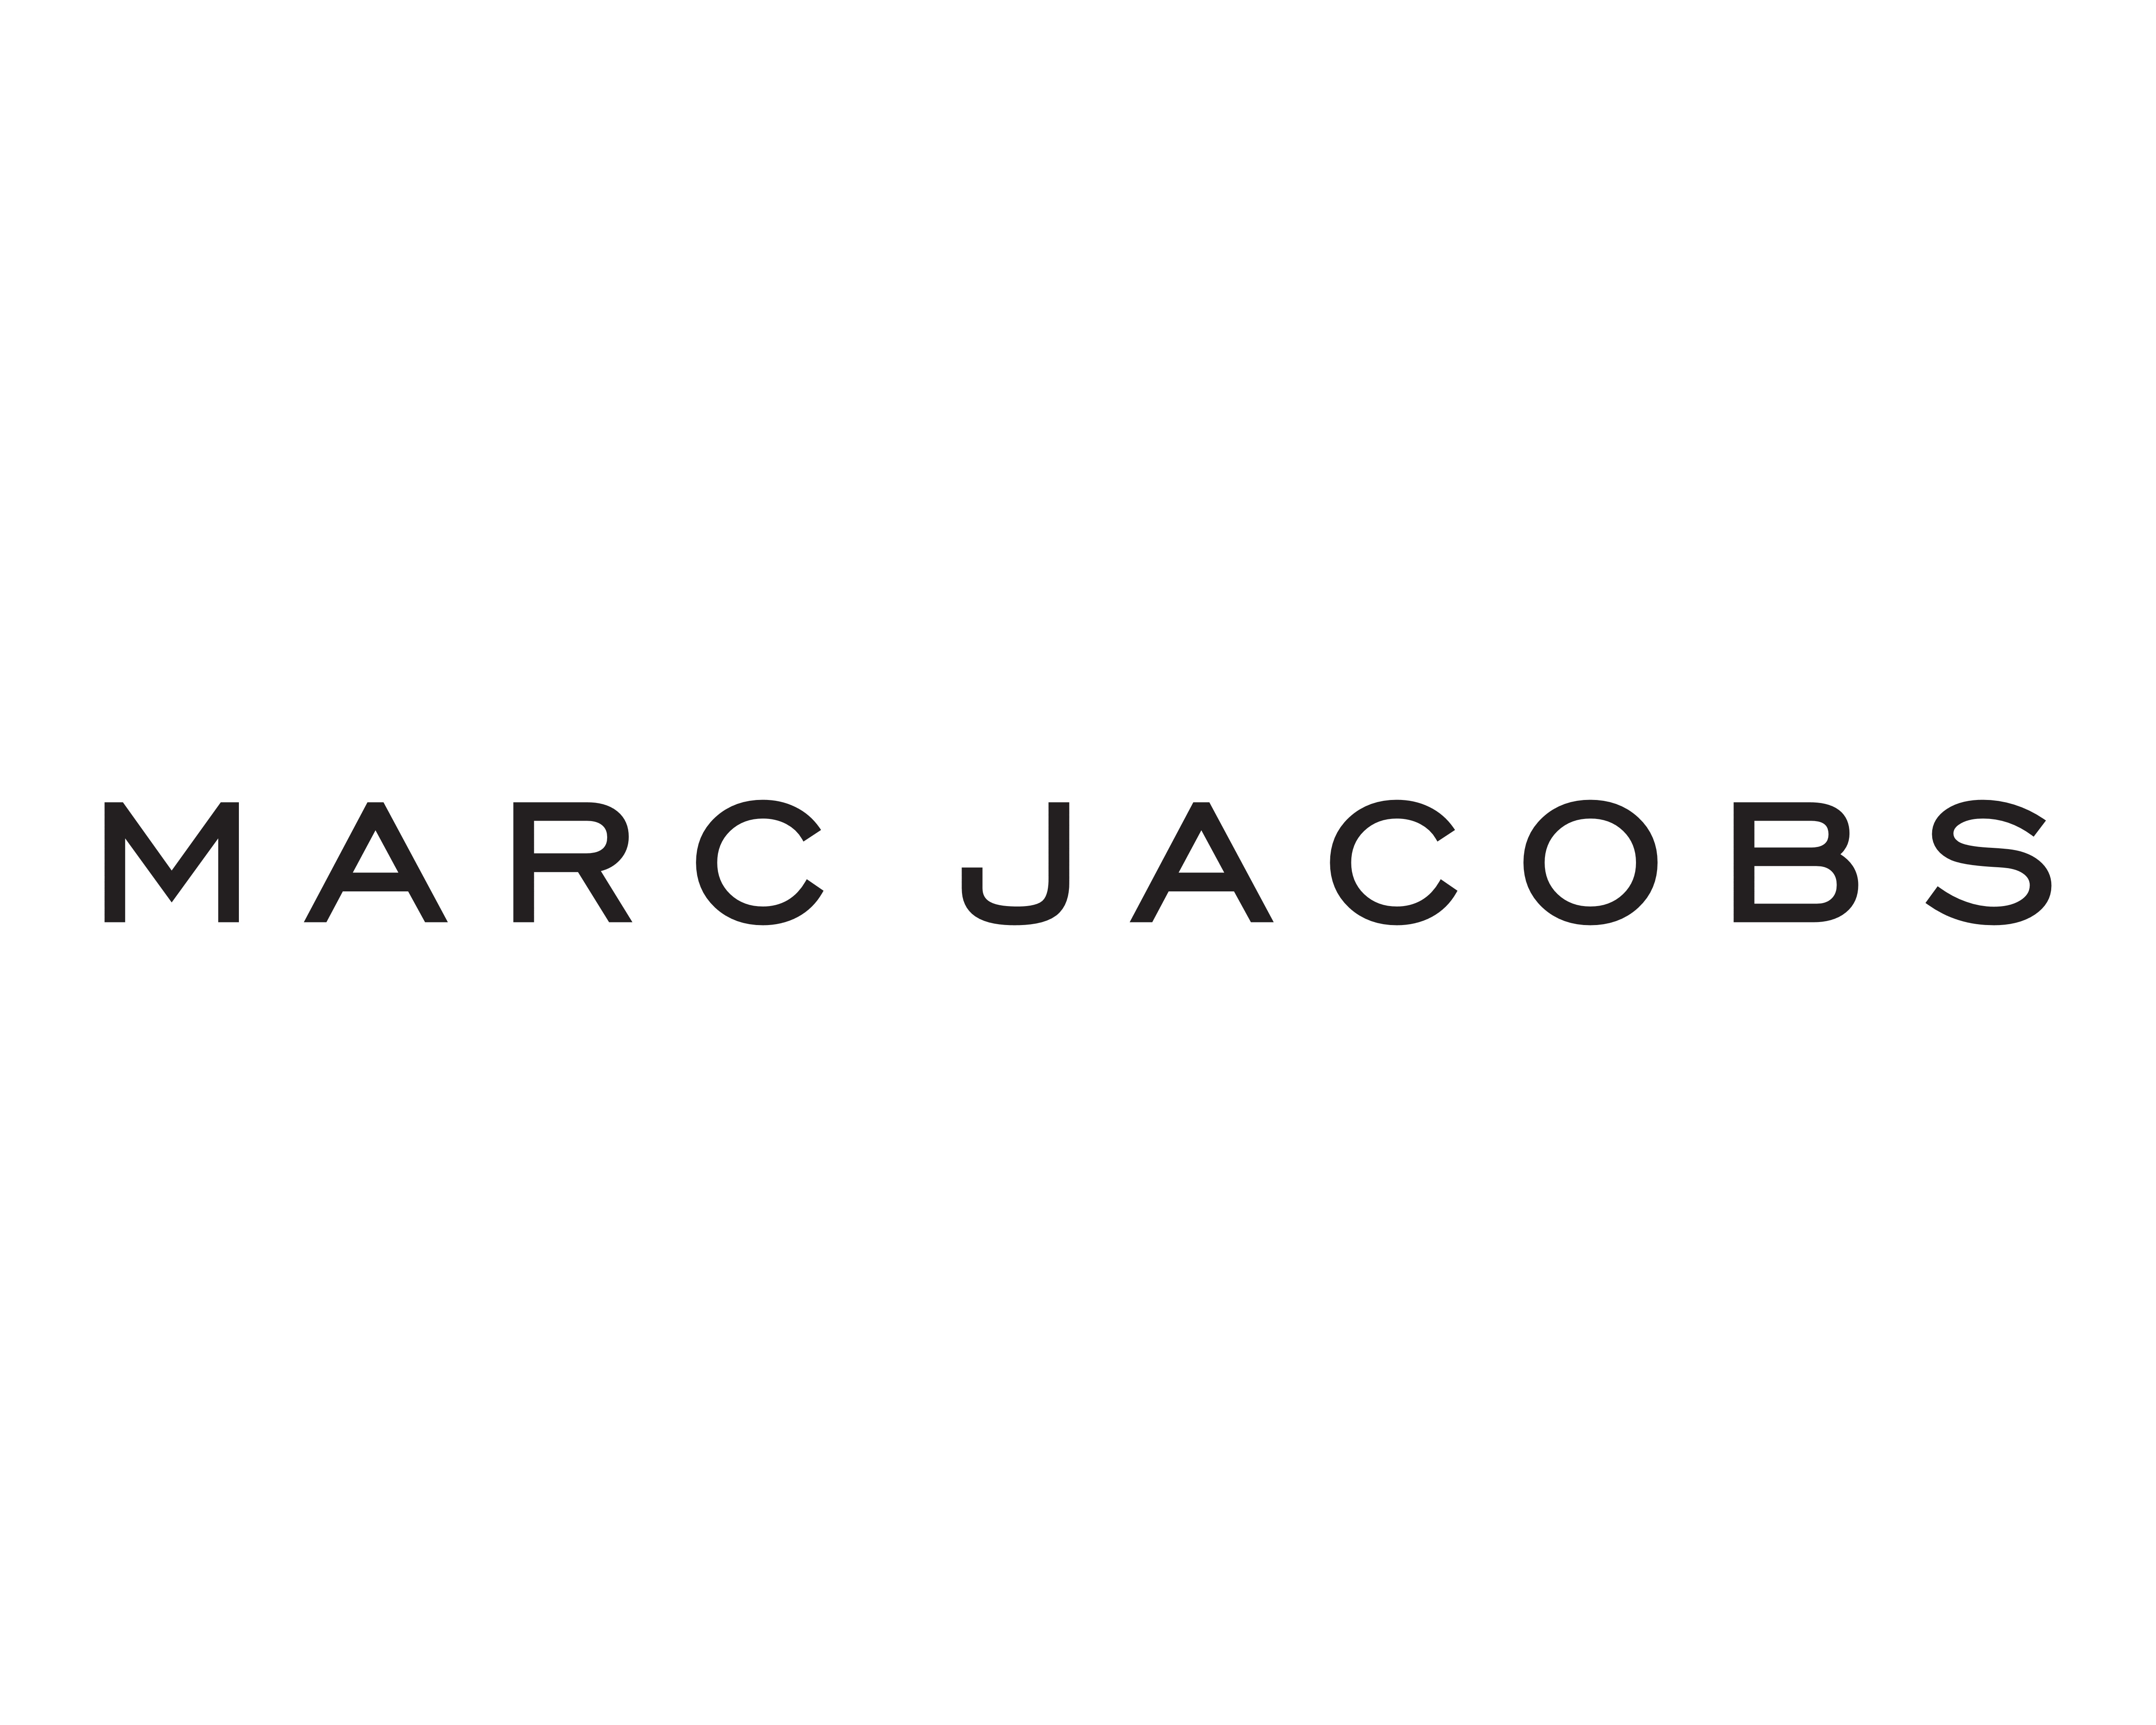 Marc_Jacobs_logo_wordmark.jpg